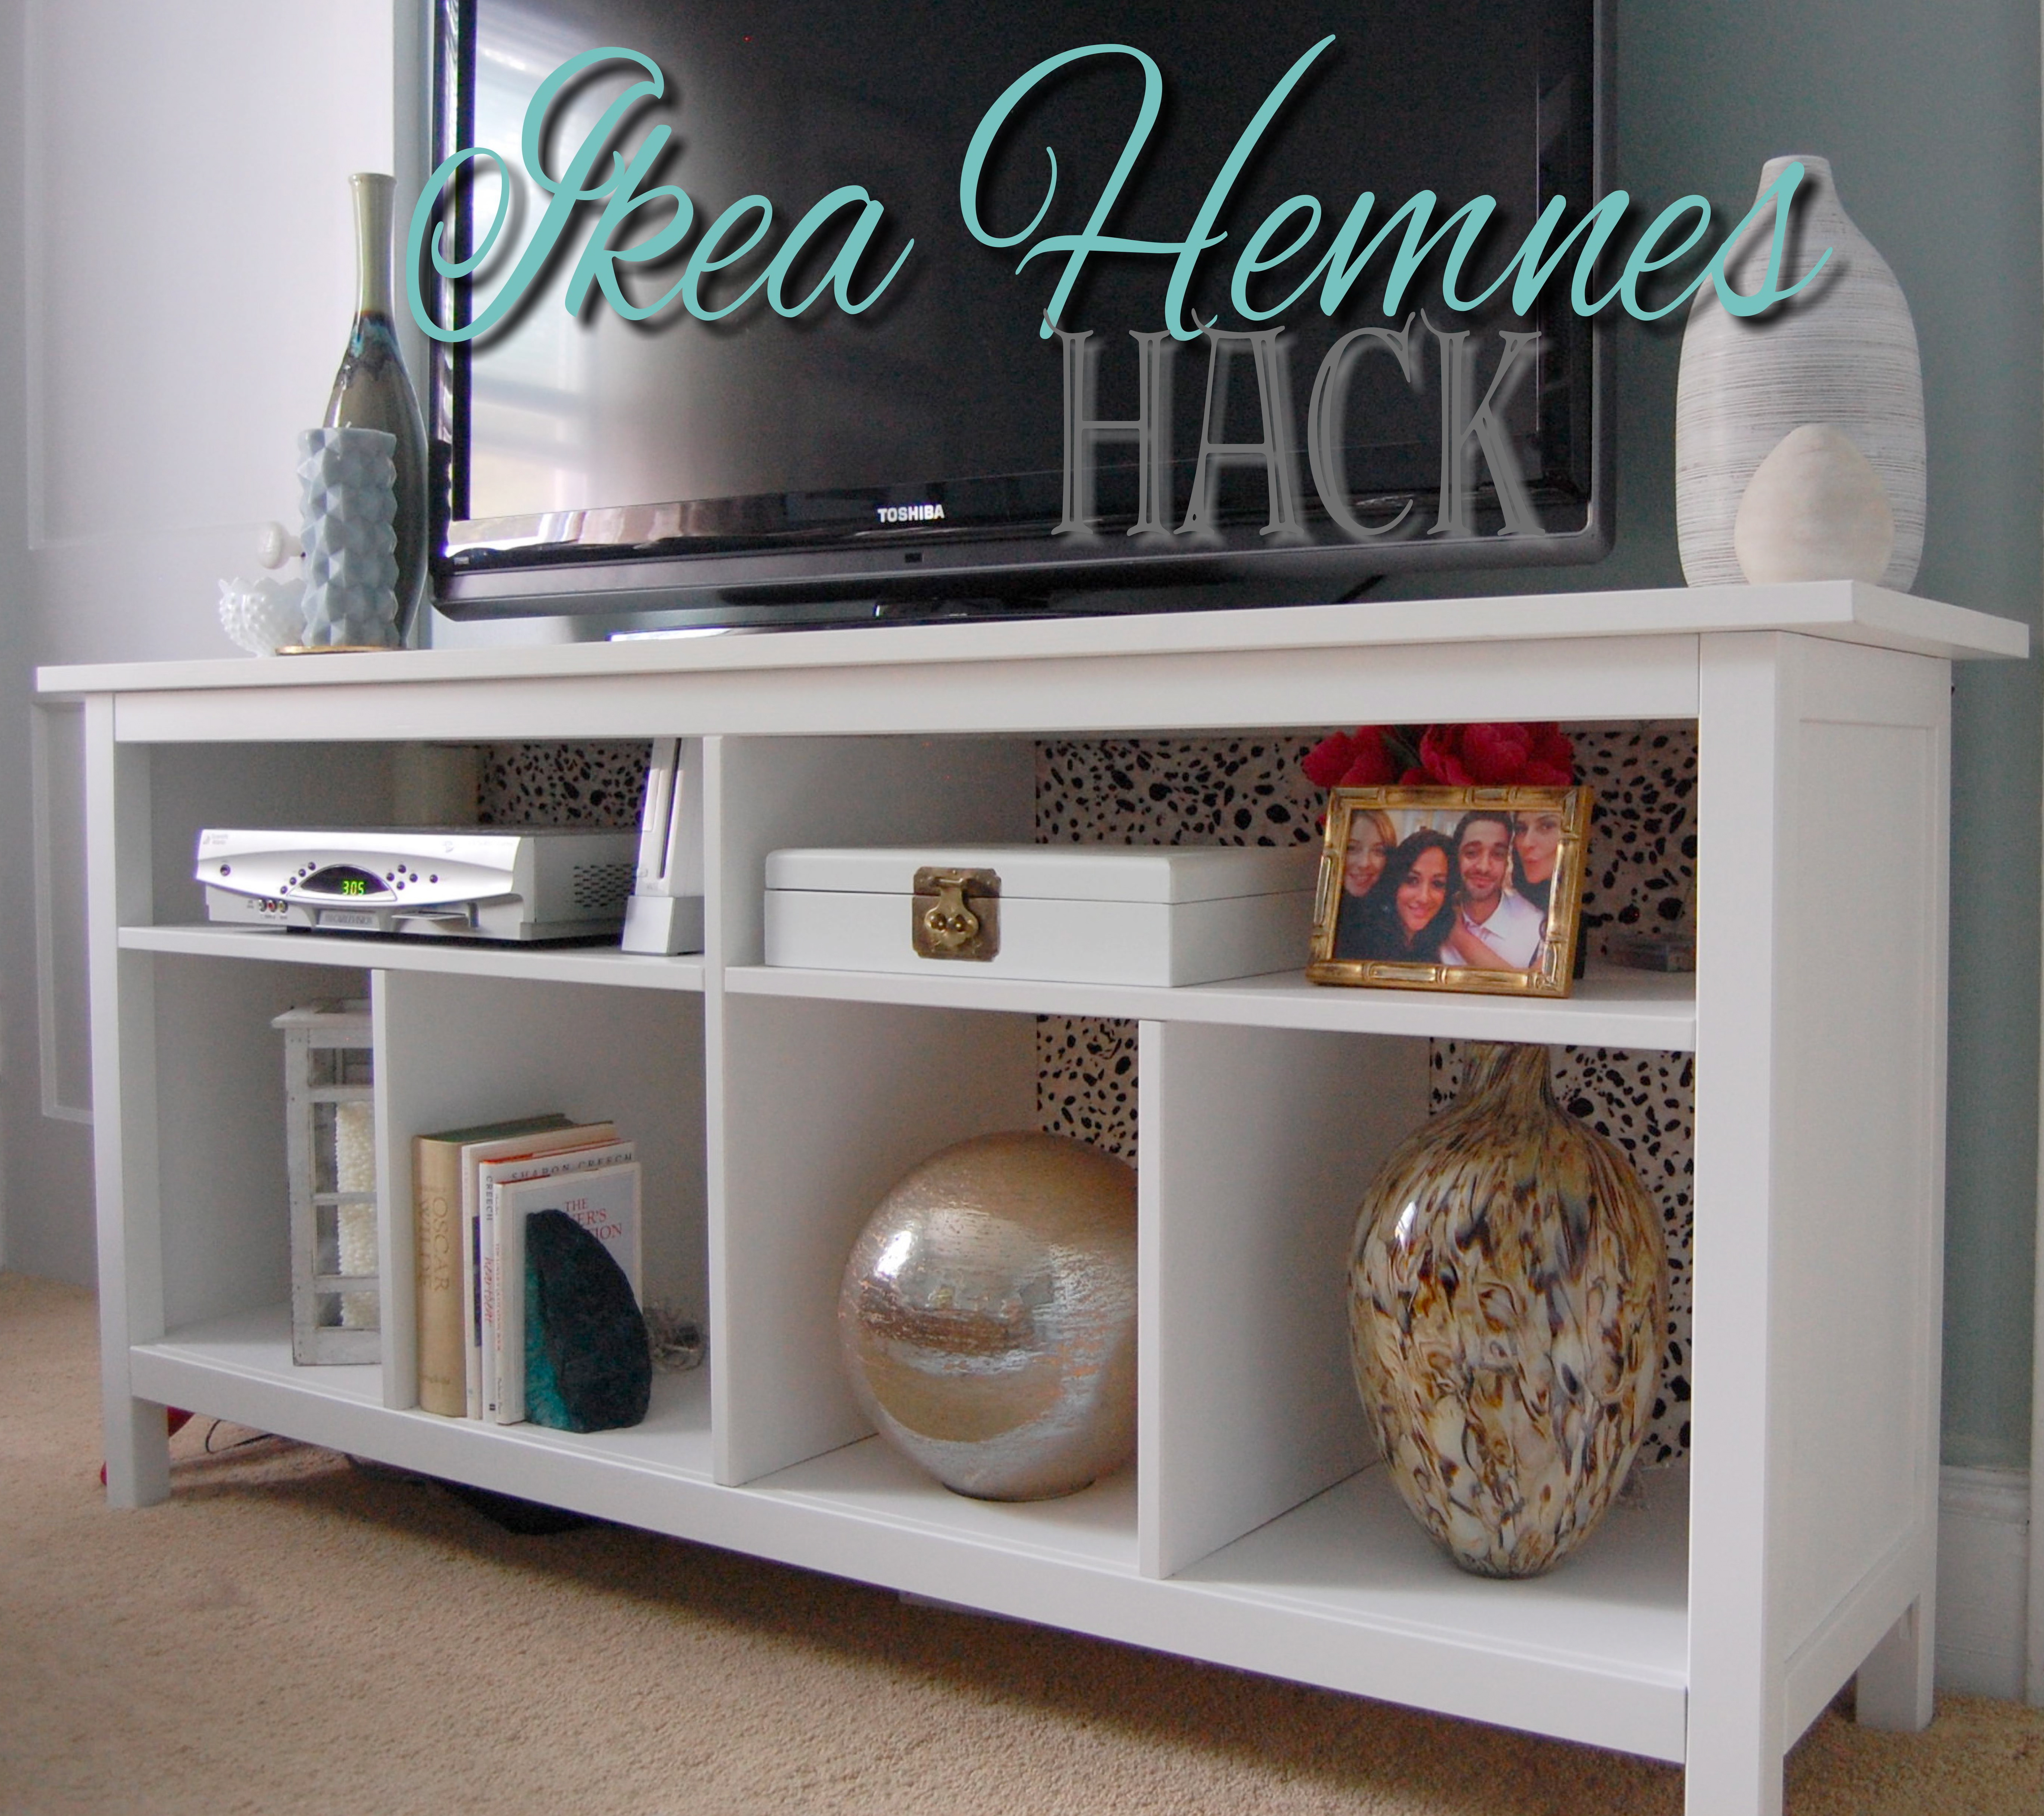 ikea hemnes hack. Black Bedroom Furniture Sets. Home Design Ideas